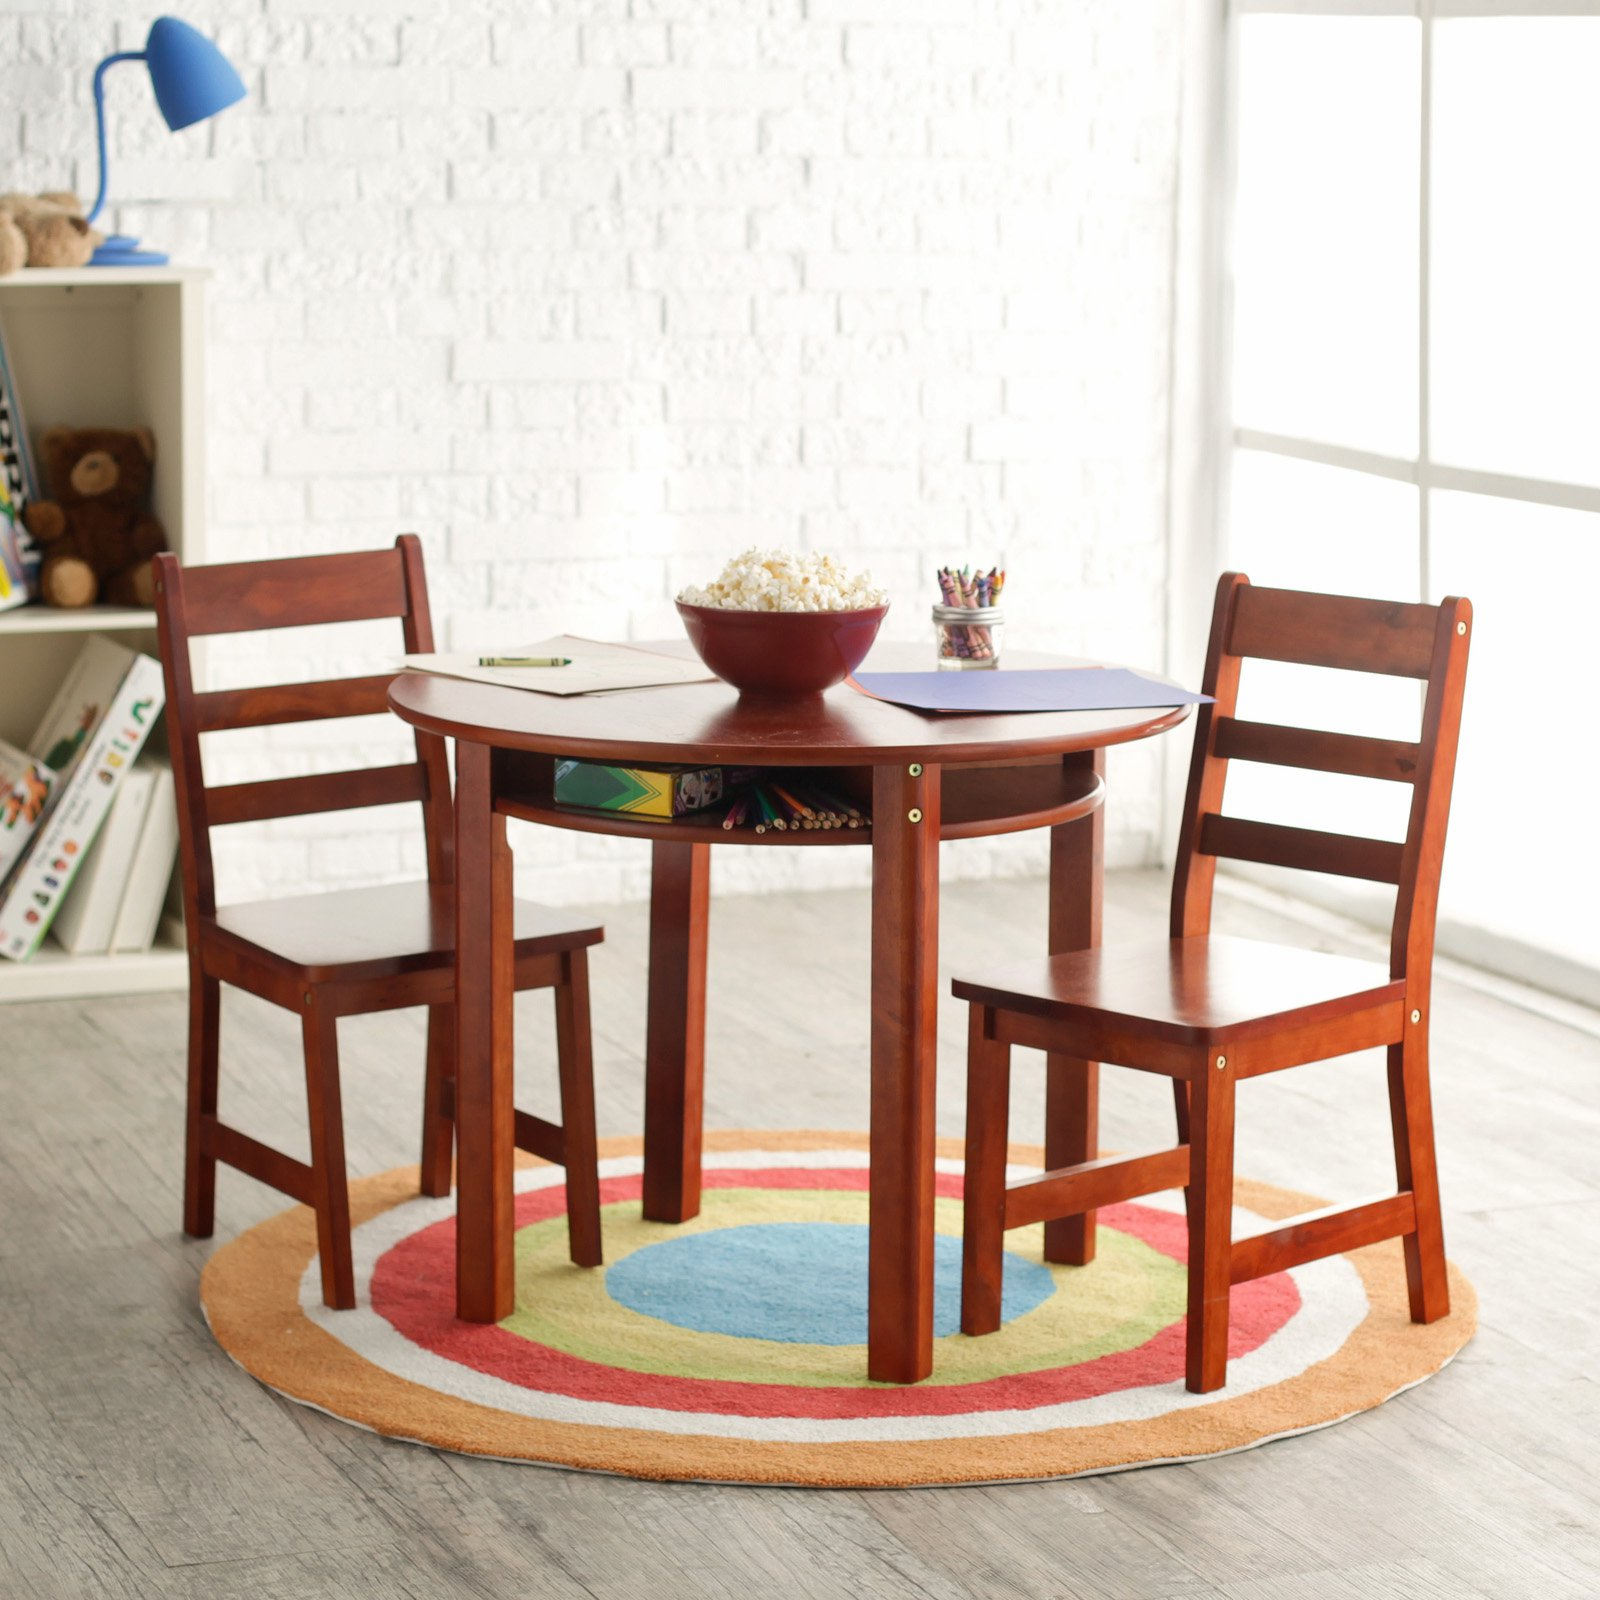 Lipper Childrens Round Table And Chair Set Walmartcom - Round table and stool set